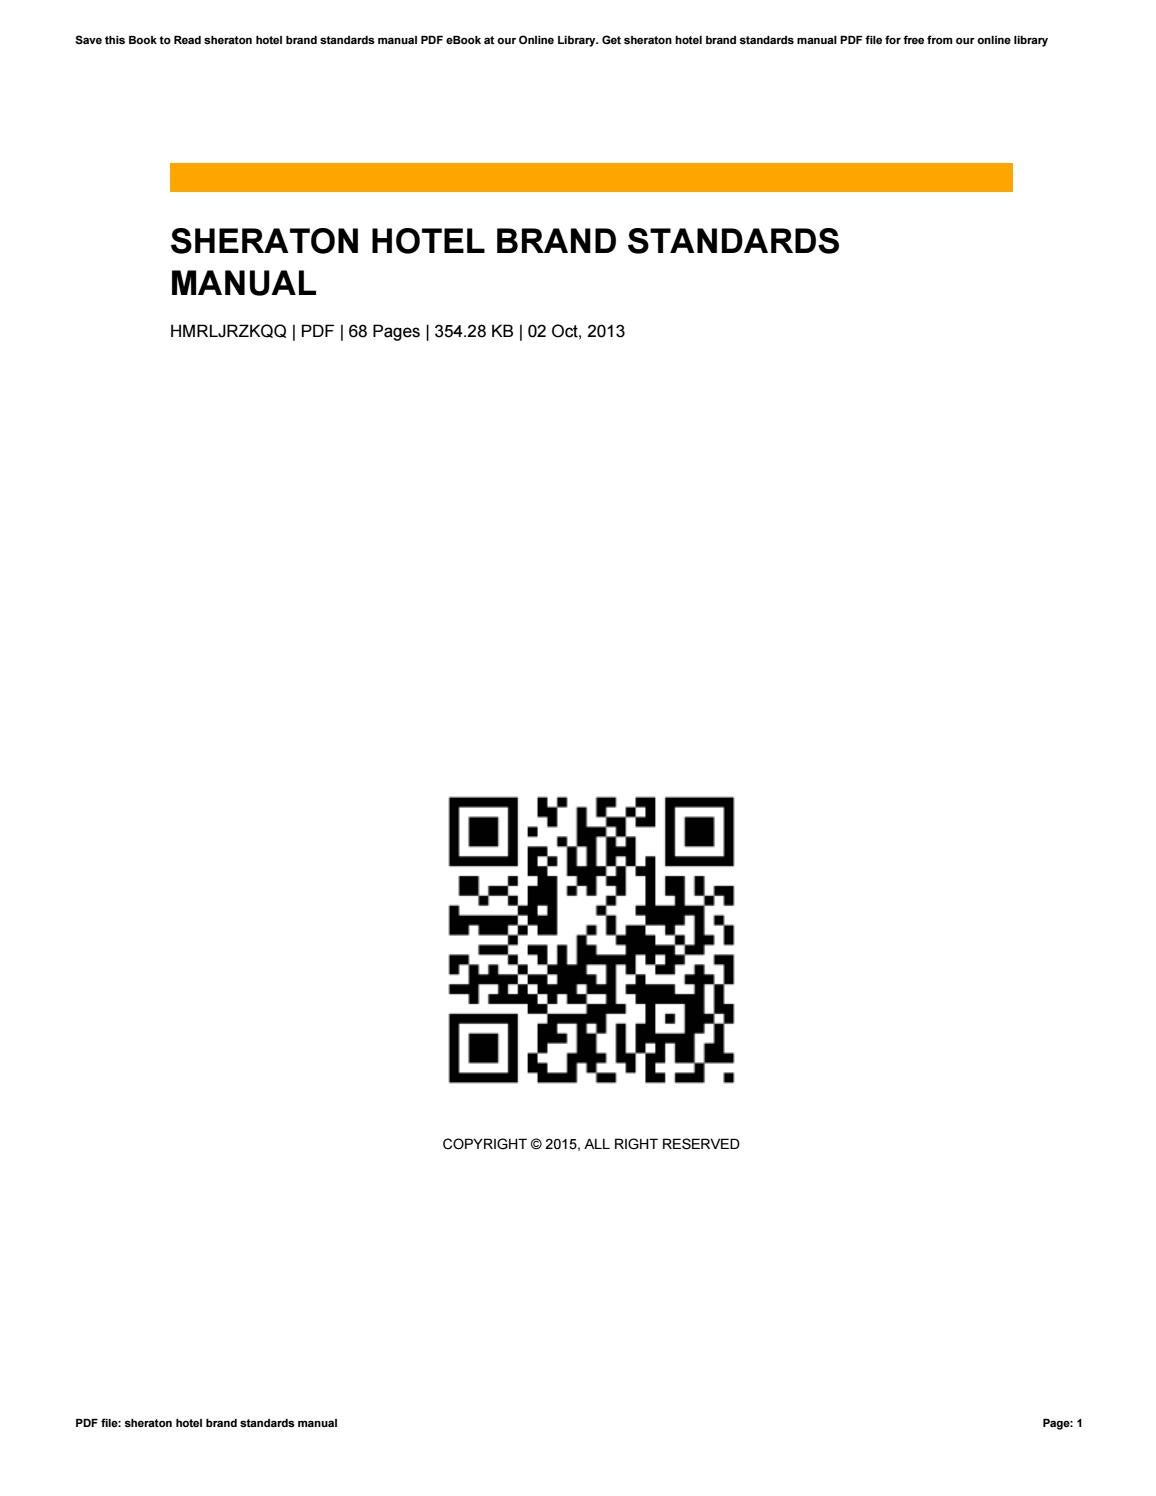 Sheraton hotel brand standards manual by JimmieJohnson4753